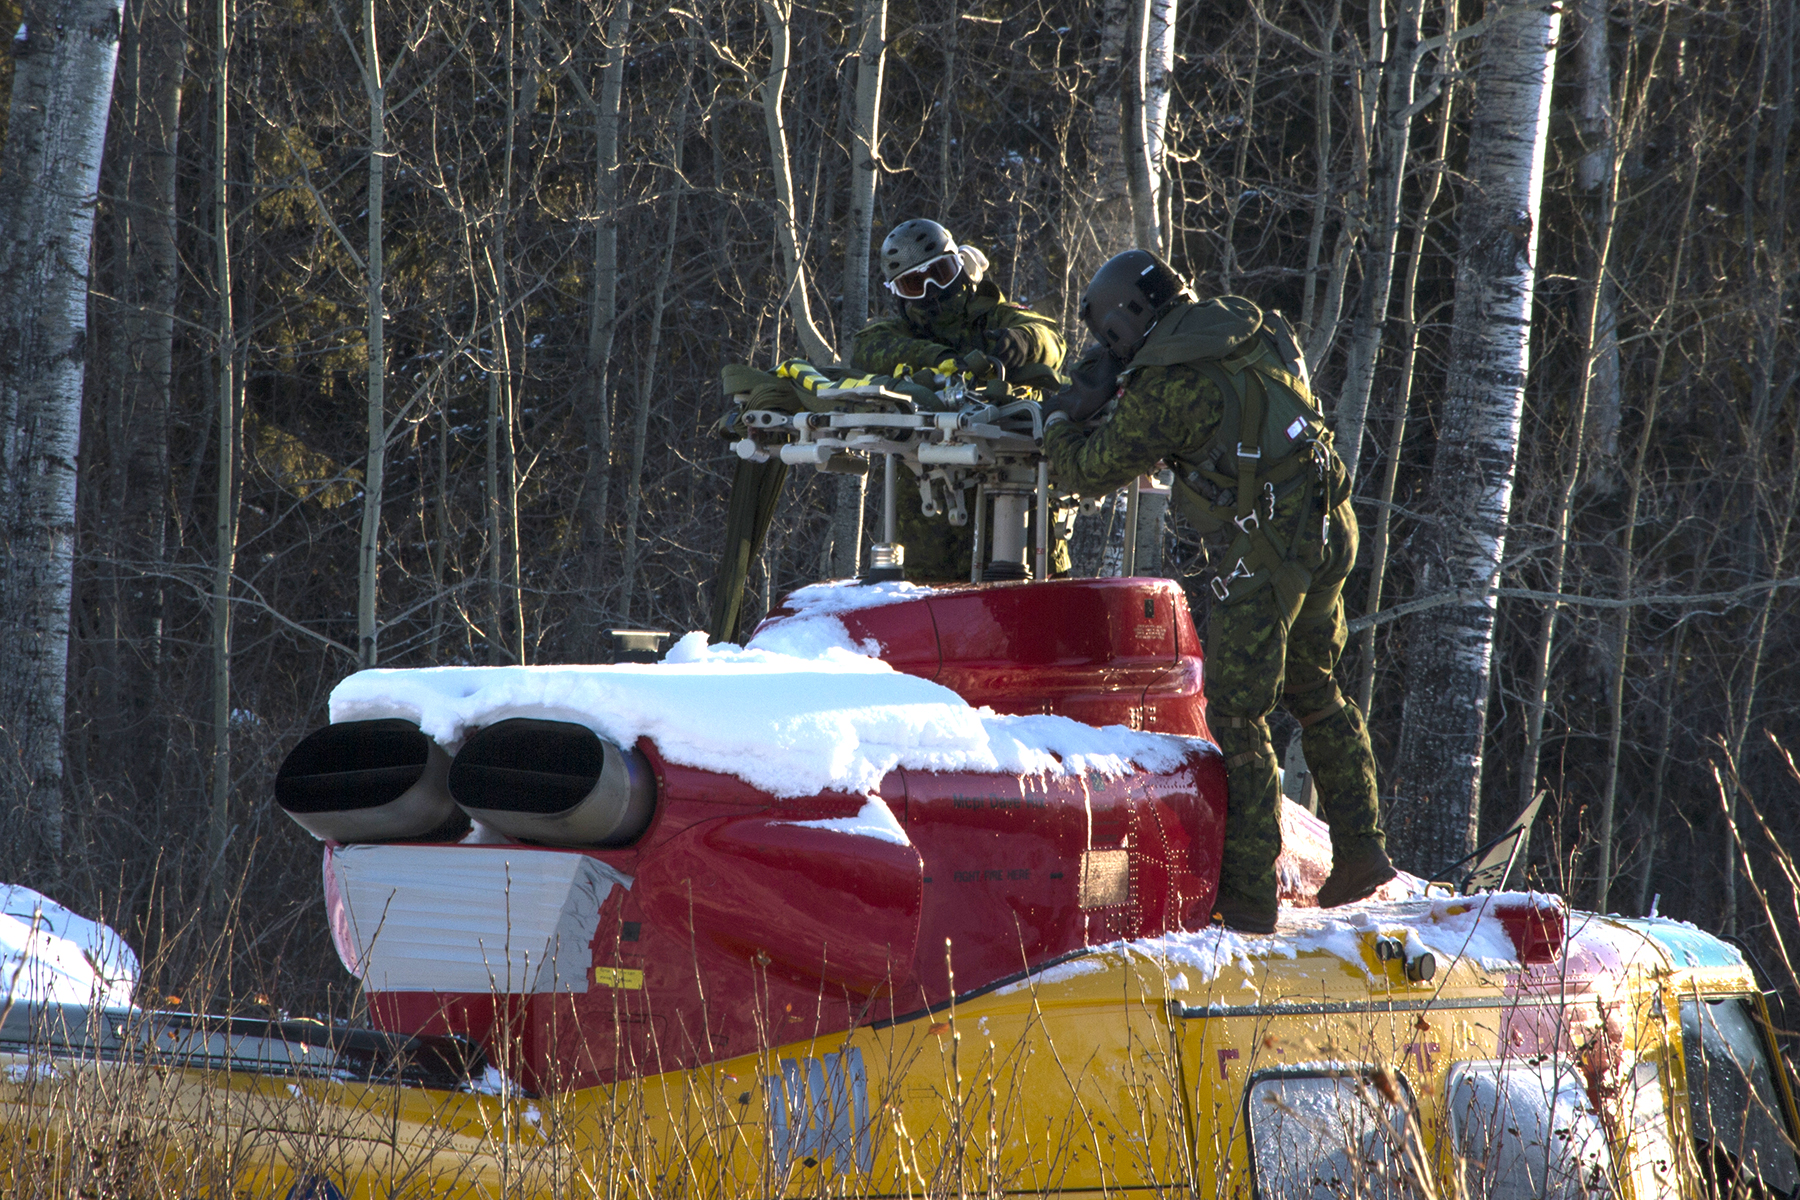 A loadmaster and another individual from 450 Tactical Helicopter Squadron, based in  Petawawa, Ontario, inspects the sling rigging on a damaged CH-146 Griffon helicopter in preparation for its lift and recovery from a remote location in the Cold Lake Air Weapons Range back to 4 Wing Cold Lake, Alberta. PHOTO: Master Corporal Raulley Parks, AE09-2019-0011-0012